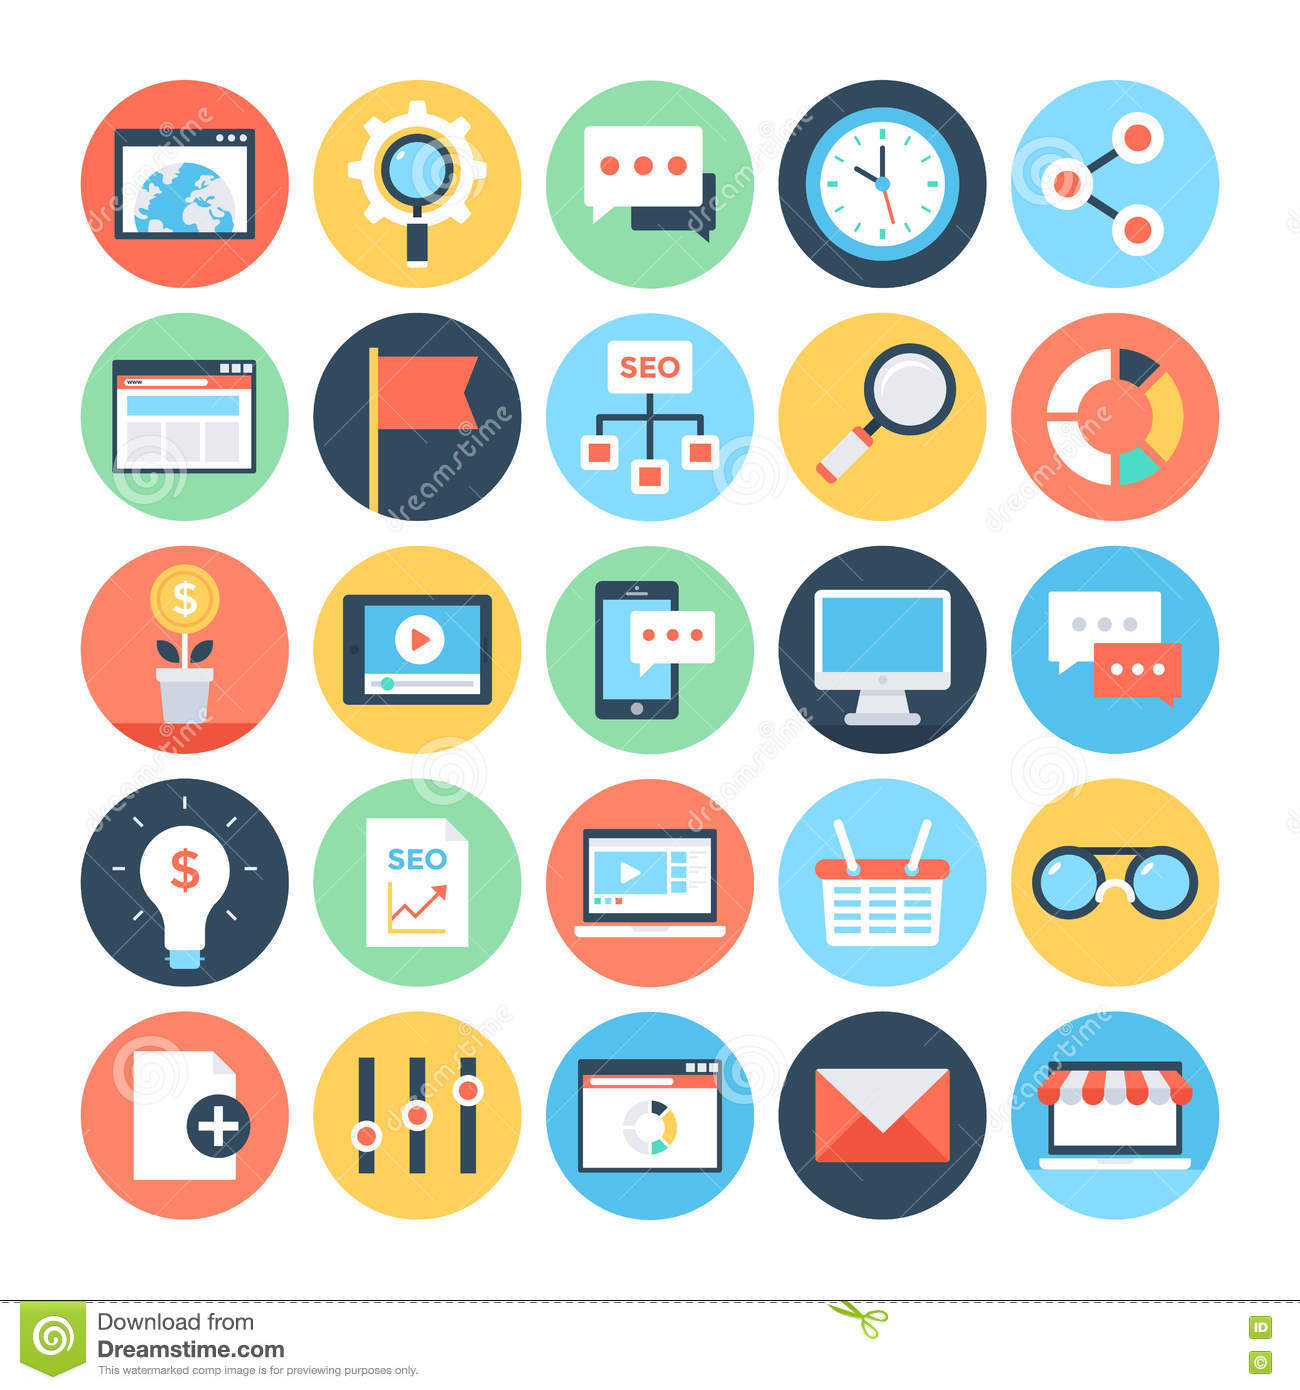 Digital marketing vector icons 3 stock illustration for Digital marketing materials